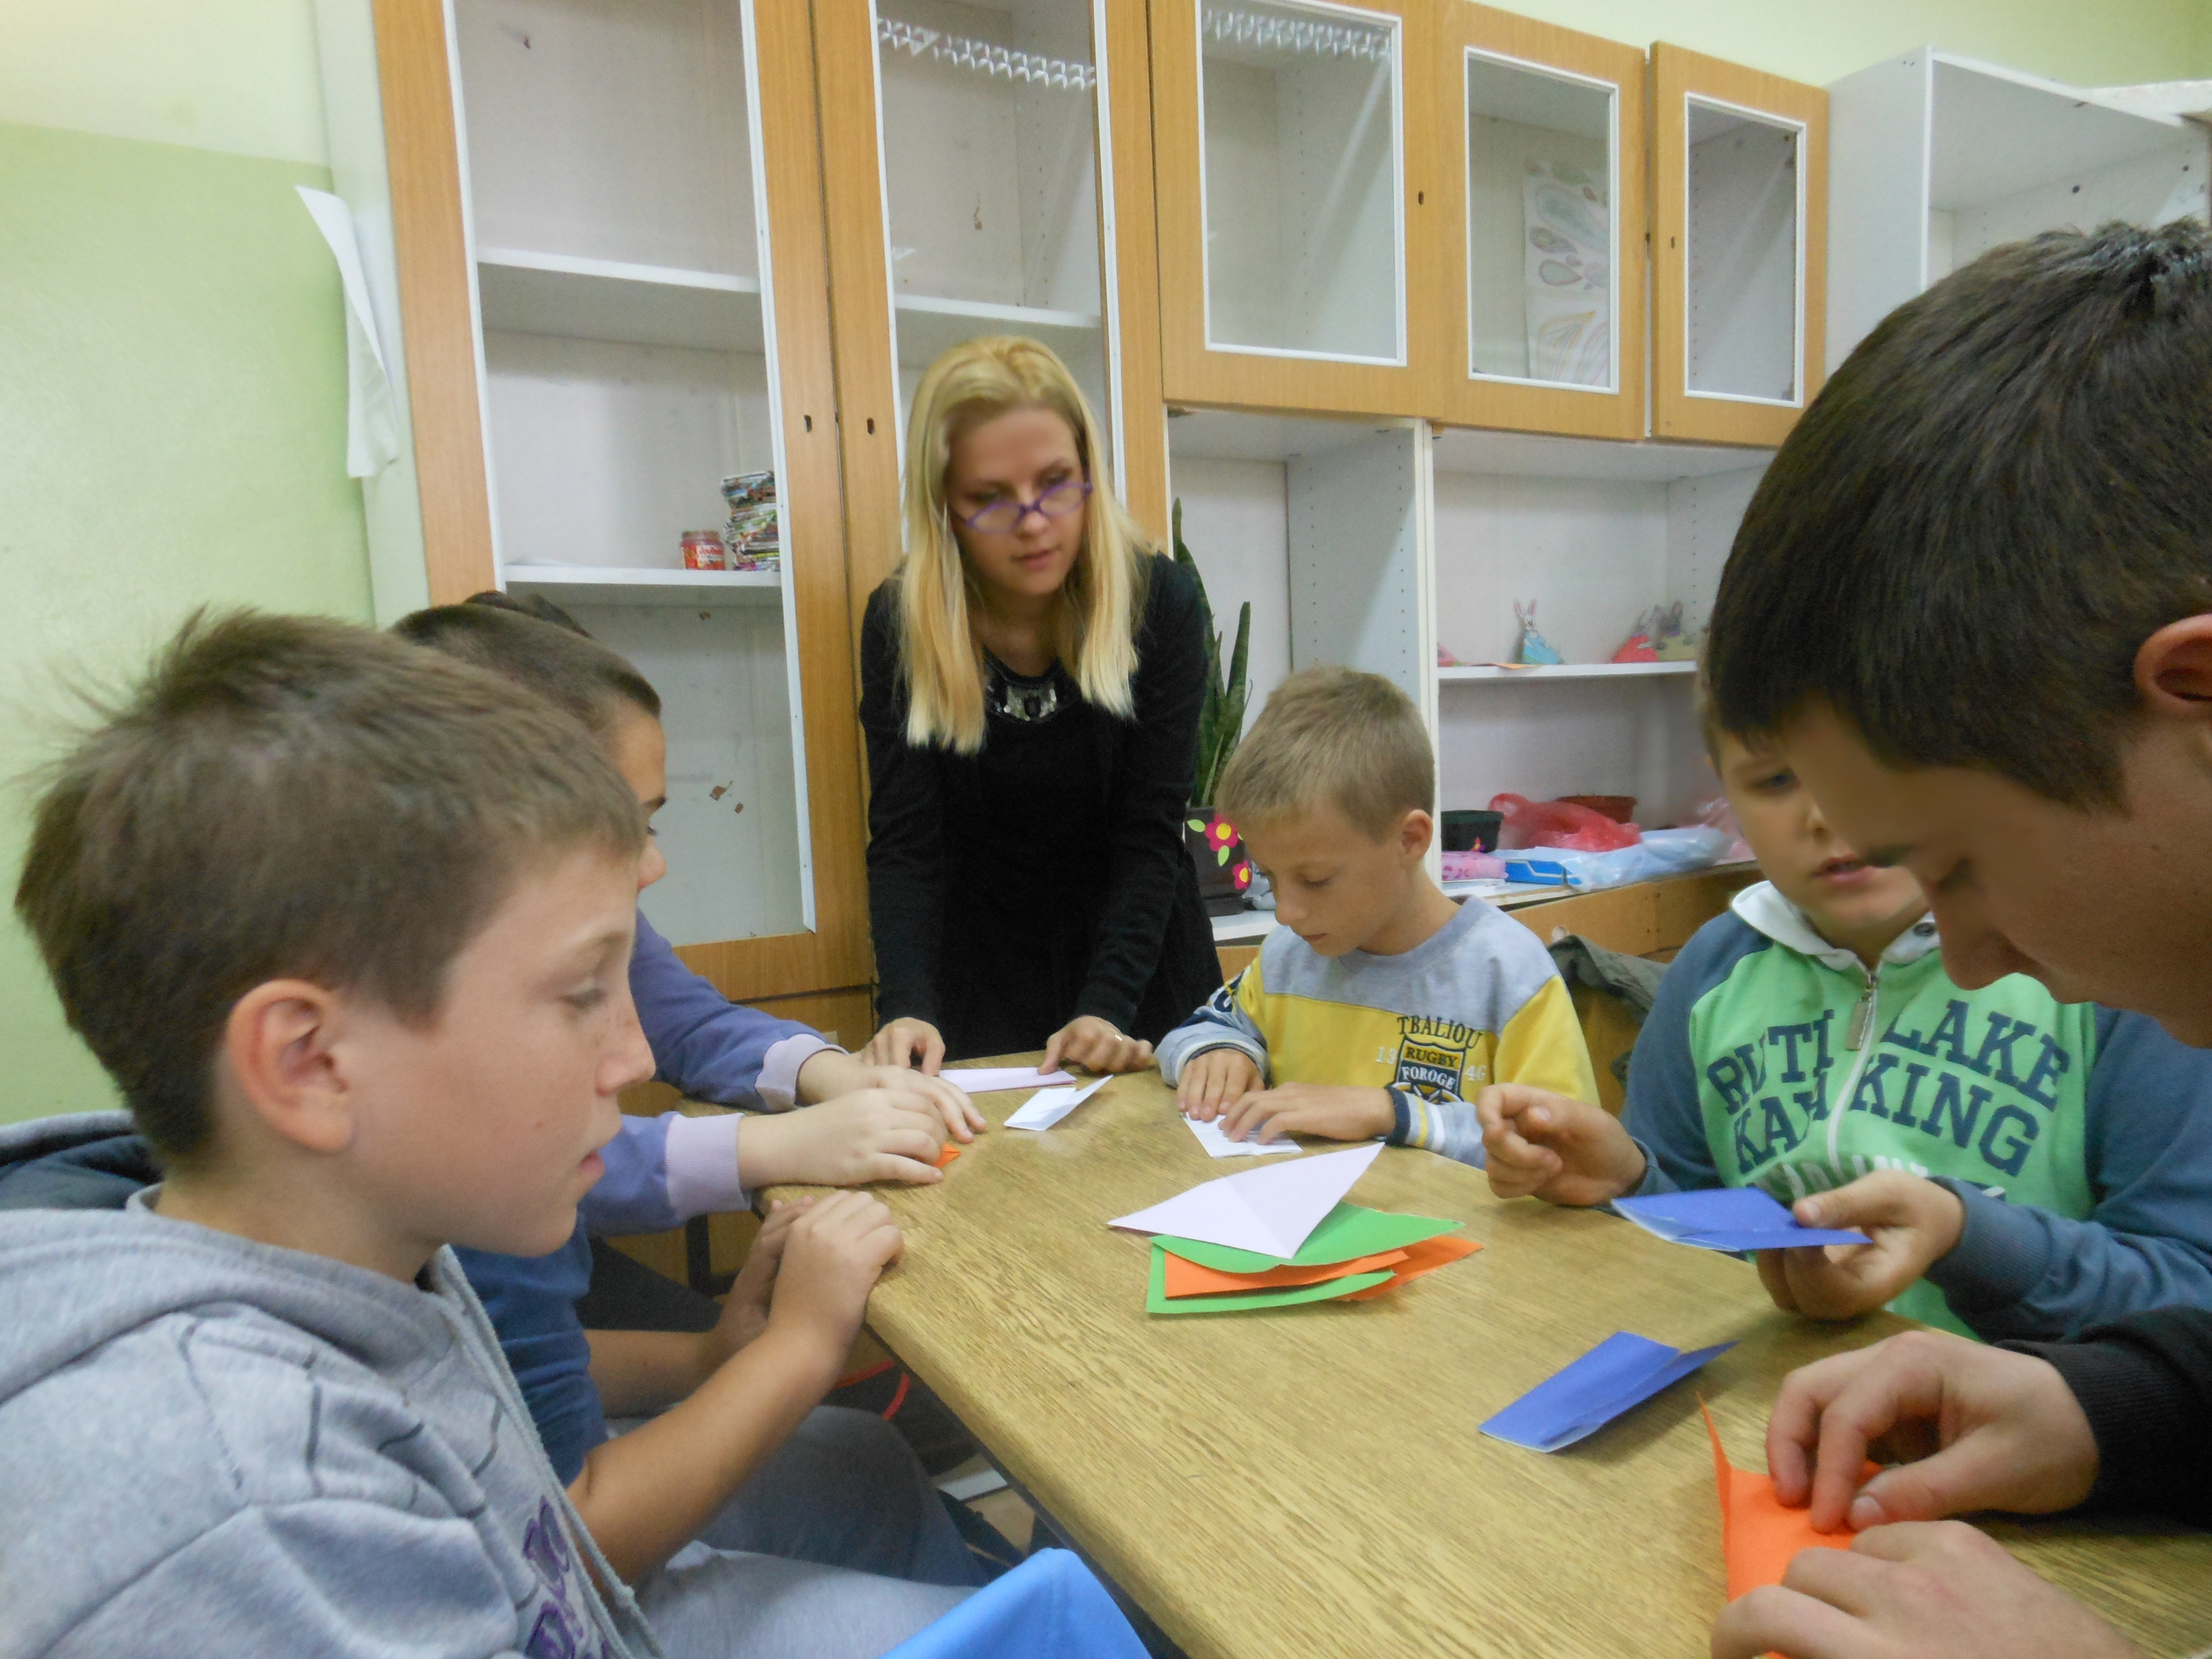 Natalja Budinski use origami at math class to illustrate difficult geometrical problems